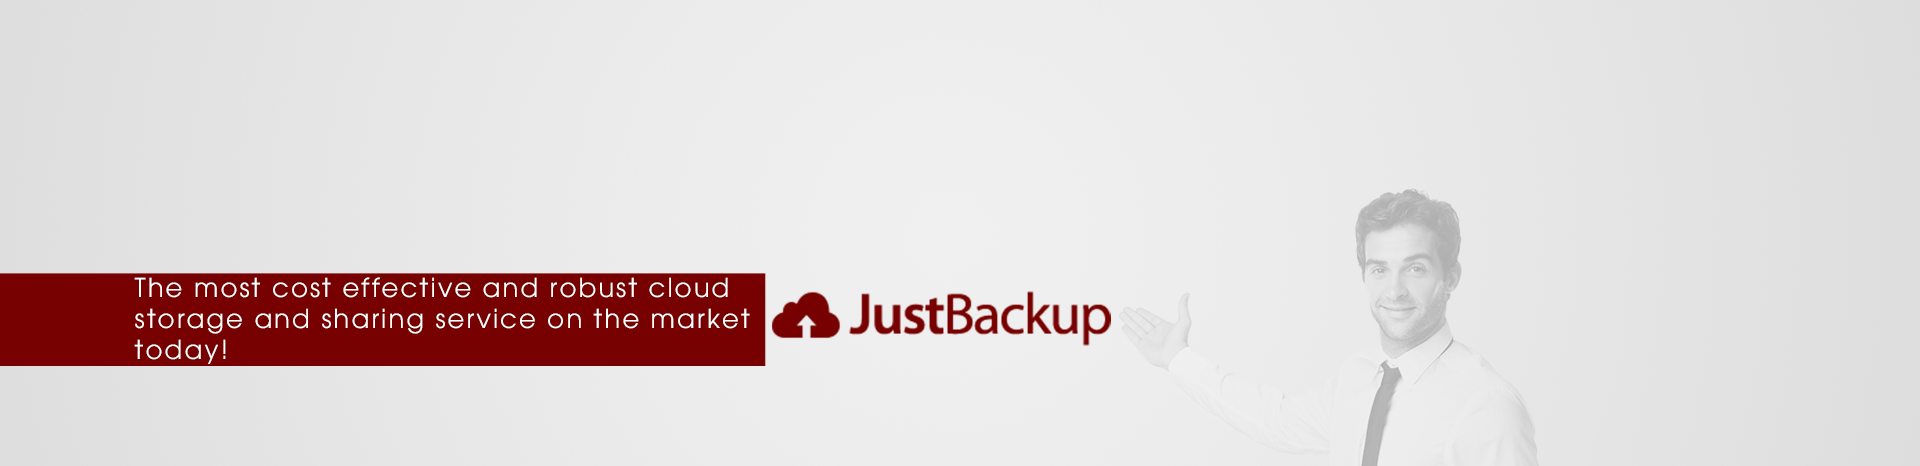 Just Backup - Cloud Backup